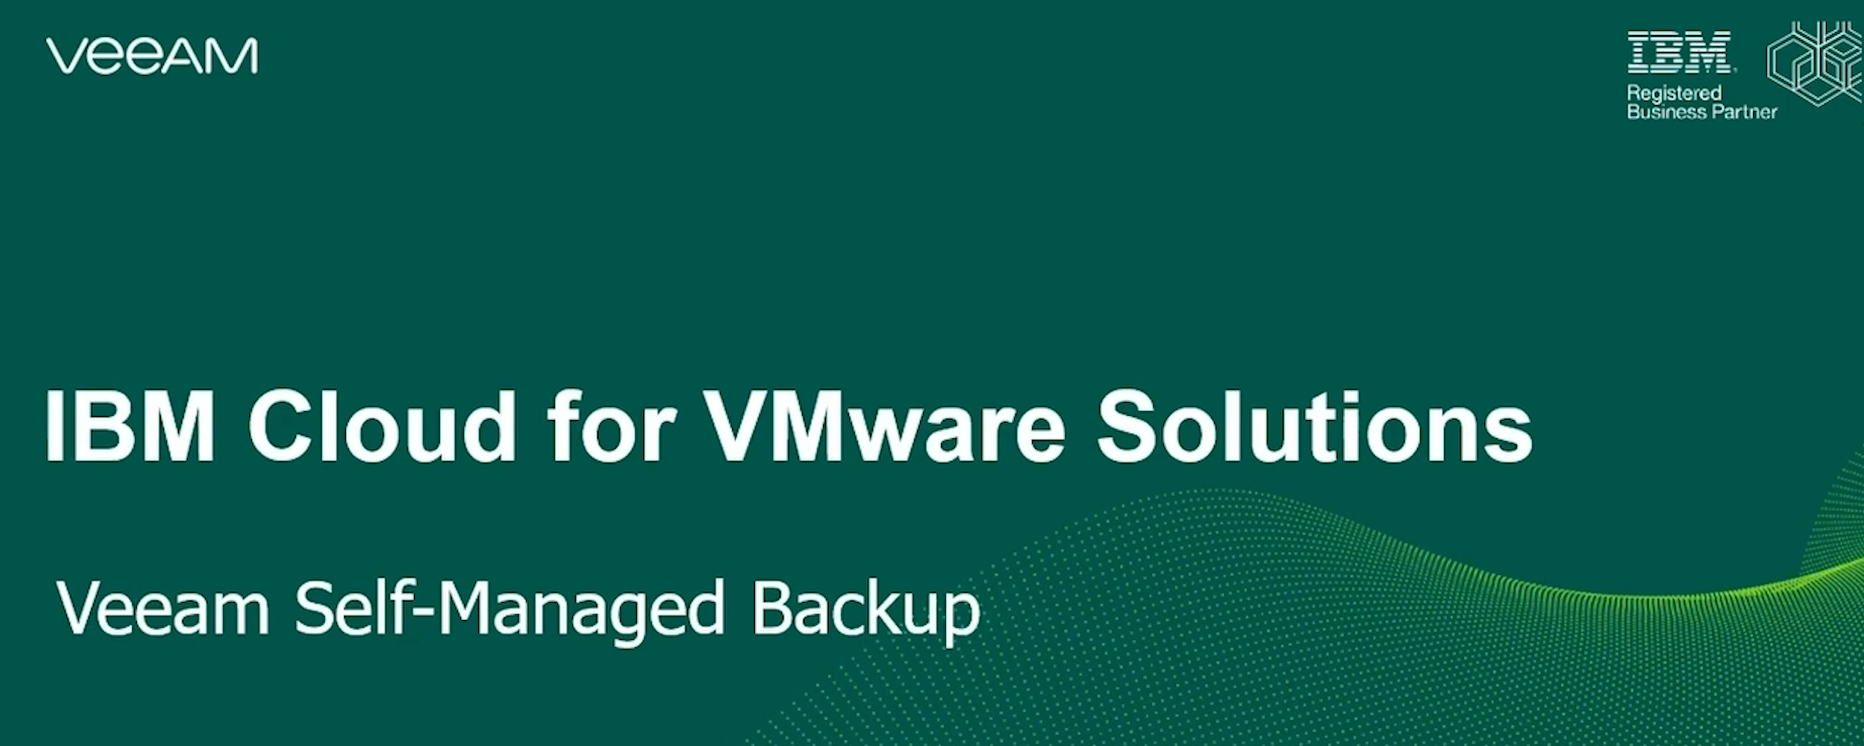 IBM cloud for VMware Solutions – Veeam Self-managed Backup